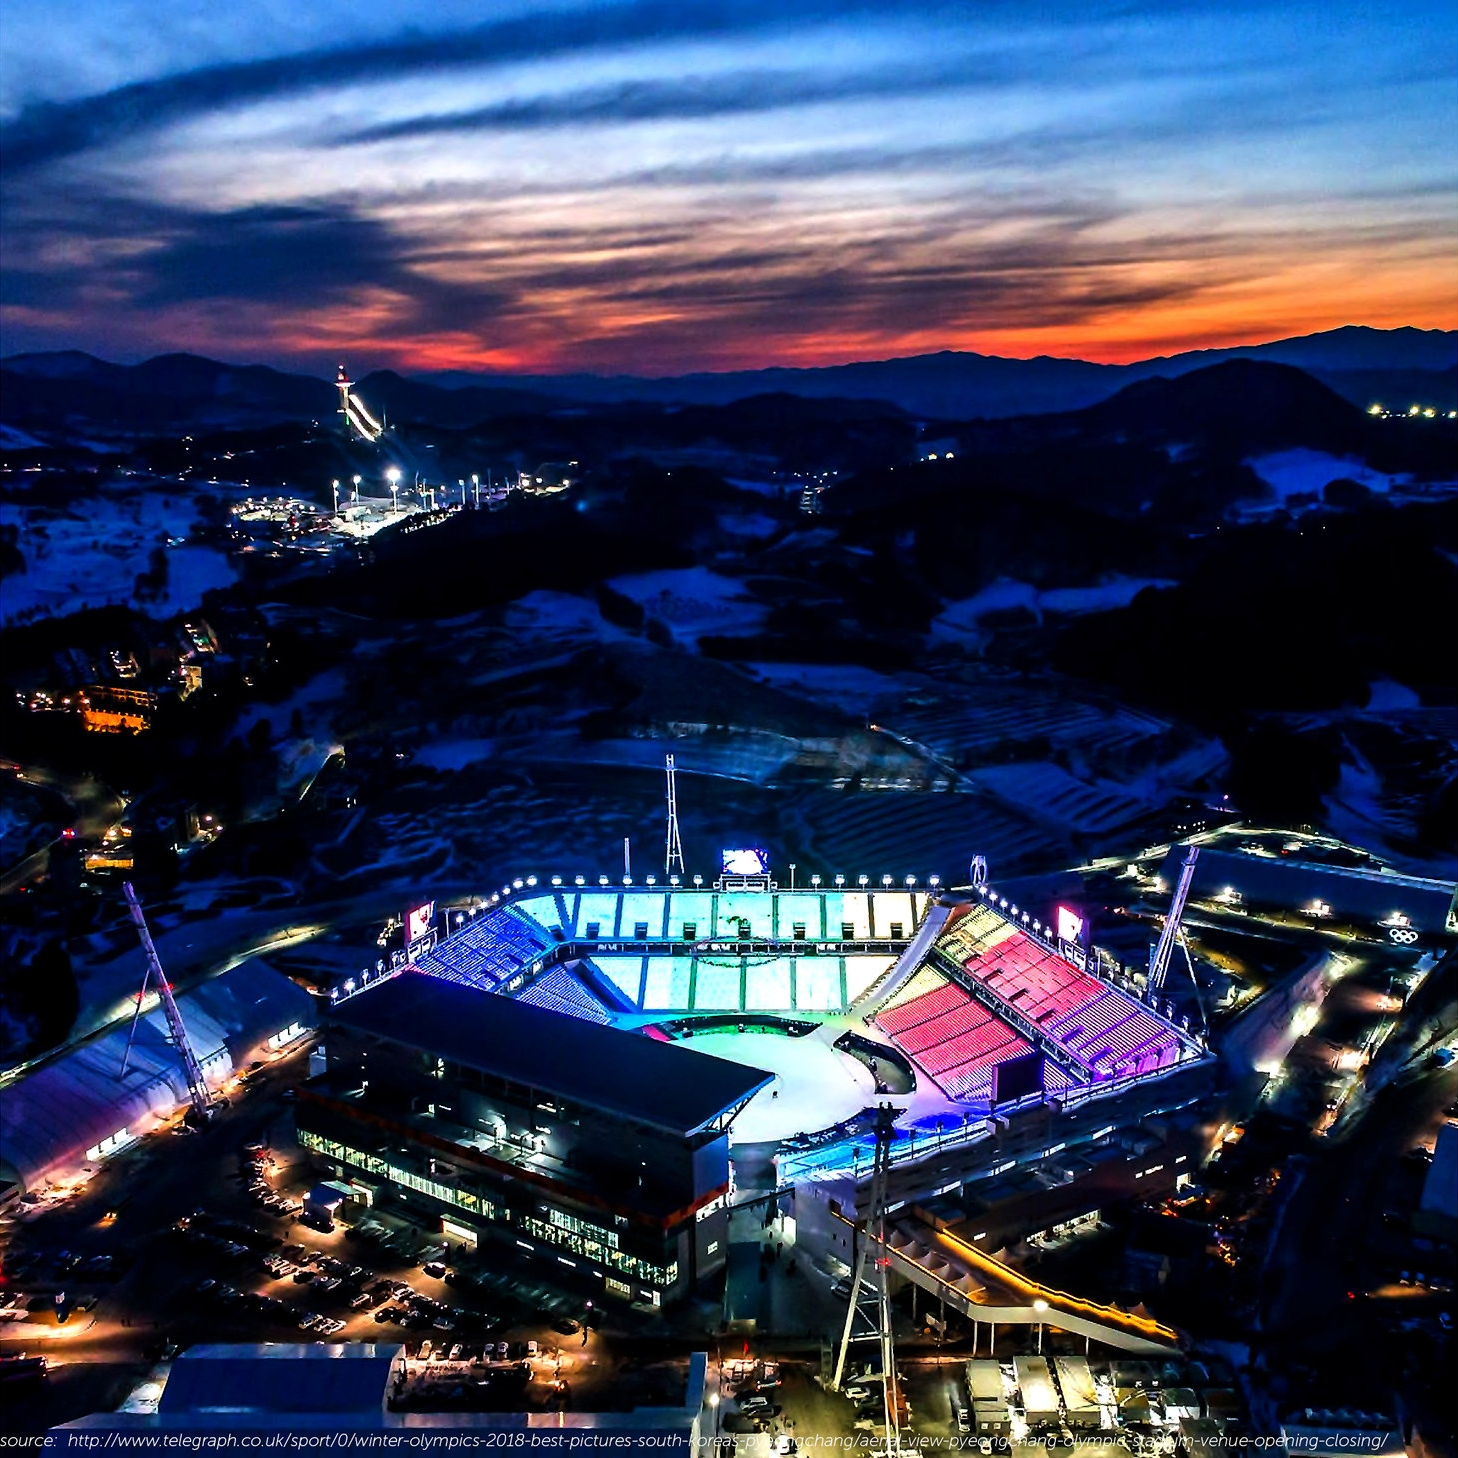 "https://www.telegraph.co.uk/sport/0/winter-olympics-2018-best-pictures-south-koreas-pyeongchang/aerial-view-pyeongchang-olympic-stadium-venue-opening-closing/ - As the 2018 Winter Olympics come to a close, the watching world will quickly retreat to more routine affairs both at home and abroad, and Pyeongchang will likely fade in our collective memory. However, as urban designers, perhaps now is precisely when we should start paying attention to what is happening there. The sustainability of purpose-built sporting facilities and their associated infrastructures after the Olympics have ended has been a major topic of debate for host countries trying to justify the immense expense of their initial construction. These Olympic facilities have historically been extremely vulnerable to underuse in a city's post-Olympic period. With their original functions vanished, many of these facilities remain today only as faded monuments to bygone glory.However, successful examples of post-Olympic integration of facilities can be found in cities like Barcelona, which hosted the Olympics in 1992. Barcelona's strategy was the first attempt to consider the Olympics as 'a catalyst for the redevelopment of its waterfront' and subsequently designed a series of public spaces including parks, fountains and public arts in order to give something more permanent for the Barcelona residents, as well as retain tourist interest after the ending of the Games. 4 years later, the Atlanta Olympics in 1996 transformed athletes' housing into dormitories for Georgia Tech University students, reflecting the Olympic event's role as an impetus for civic improvements of the city. However, unlike cities that had to construct new facilities from scratch, Paris and Los Angeles won bids for the 2024 and 2028 Games respectively by planning to use their extensive network of existing facilities. This myriad of examples show us the varying needs and approaches that face Olympic host cities with respect to scale and status.Learning from both the 1988 Summer Olympics in Seoul and the 2002 FIFA World Cup, the Korean government anticipated the burdens associated with hosting such major events, and therefore examined Pyeongchang critically. Since the city is located in a relatively remote area, the needs of its infrastructure needed to be resolved first in order to become a successful sustainable city beyond the Winter Games. Therefore, facilities other than major infrastructure or facilities with explicit future demands will be demolished. Furthermore, the Olympic Village will be transformed into condos, and the express train line will remain to increase Pyeongchang's proximity to Seoul. Distinct from many previous host countries, the Korean government intends to use the Olympics in Pyeongchang to catalyze infrastructure development between Seoul, the capital city, and Kangwon-do province located on the east side of Korea, which has historically not been considered a major development region.Venues that will only exist temporarily include the ""roofless"" Olympic Stadium, the Gangneung Hockey Center, the Olympic speed skating venue, and the downhill ski course in Jeongseon. In these cases, I'd like to ask what kind of architecture & aesthetics these 'temporal 'Olympic-related facilities should take the form of? Some articles say that the roofless Olympic Stadium embodies an extreme case of pop-up architecture in the contemporary context of the Olympic era. However, there are other more critical voices that claim that these facilities have not considered ""the disappearance of the project"" along with their physical characteristics. Certainly, it opens up new conversations regarding the ephemeral nature of architecture and its increasingly controversial role in event-oriented urban design & city-building."